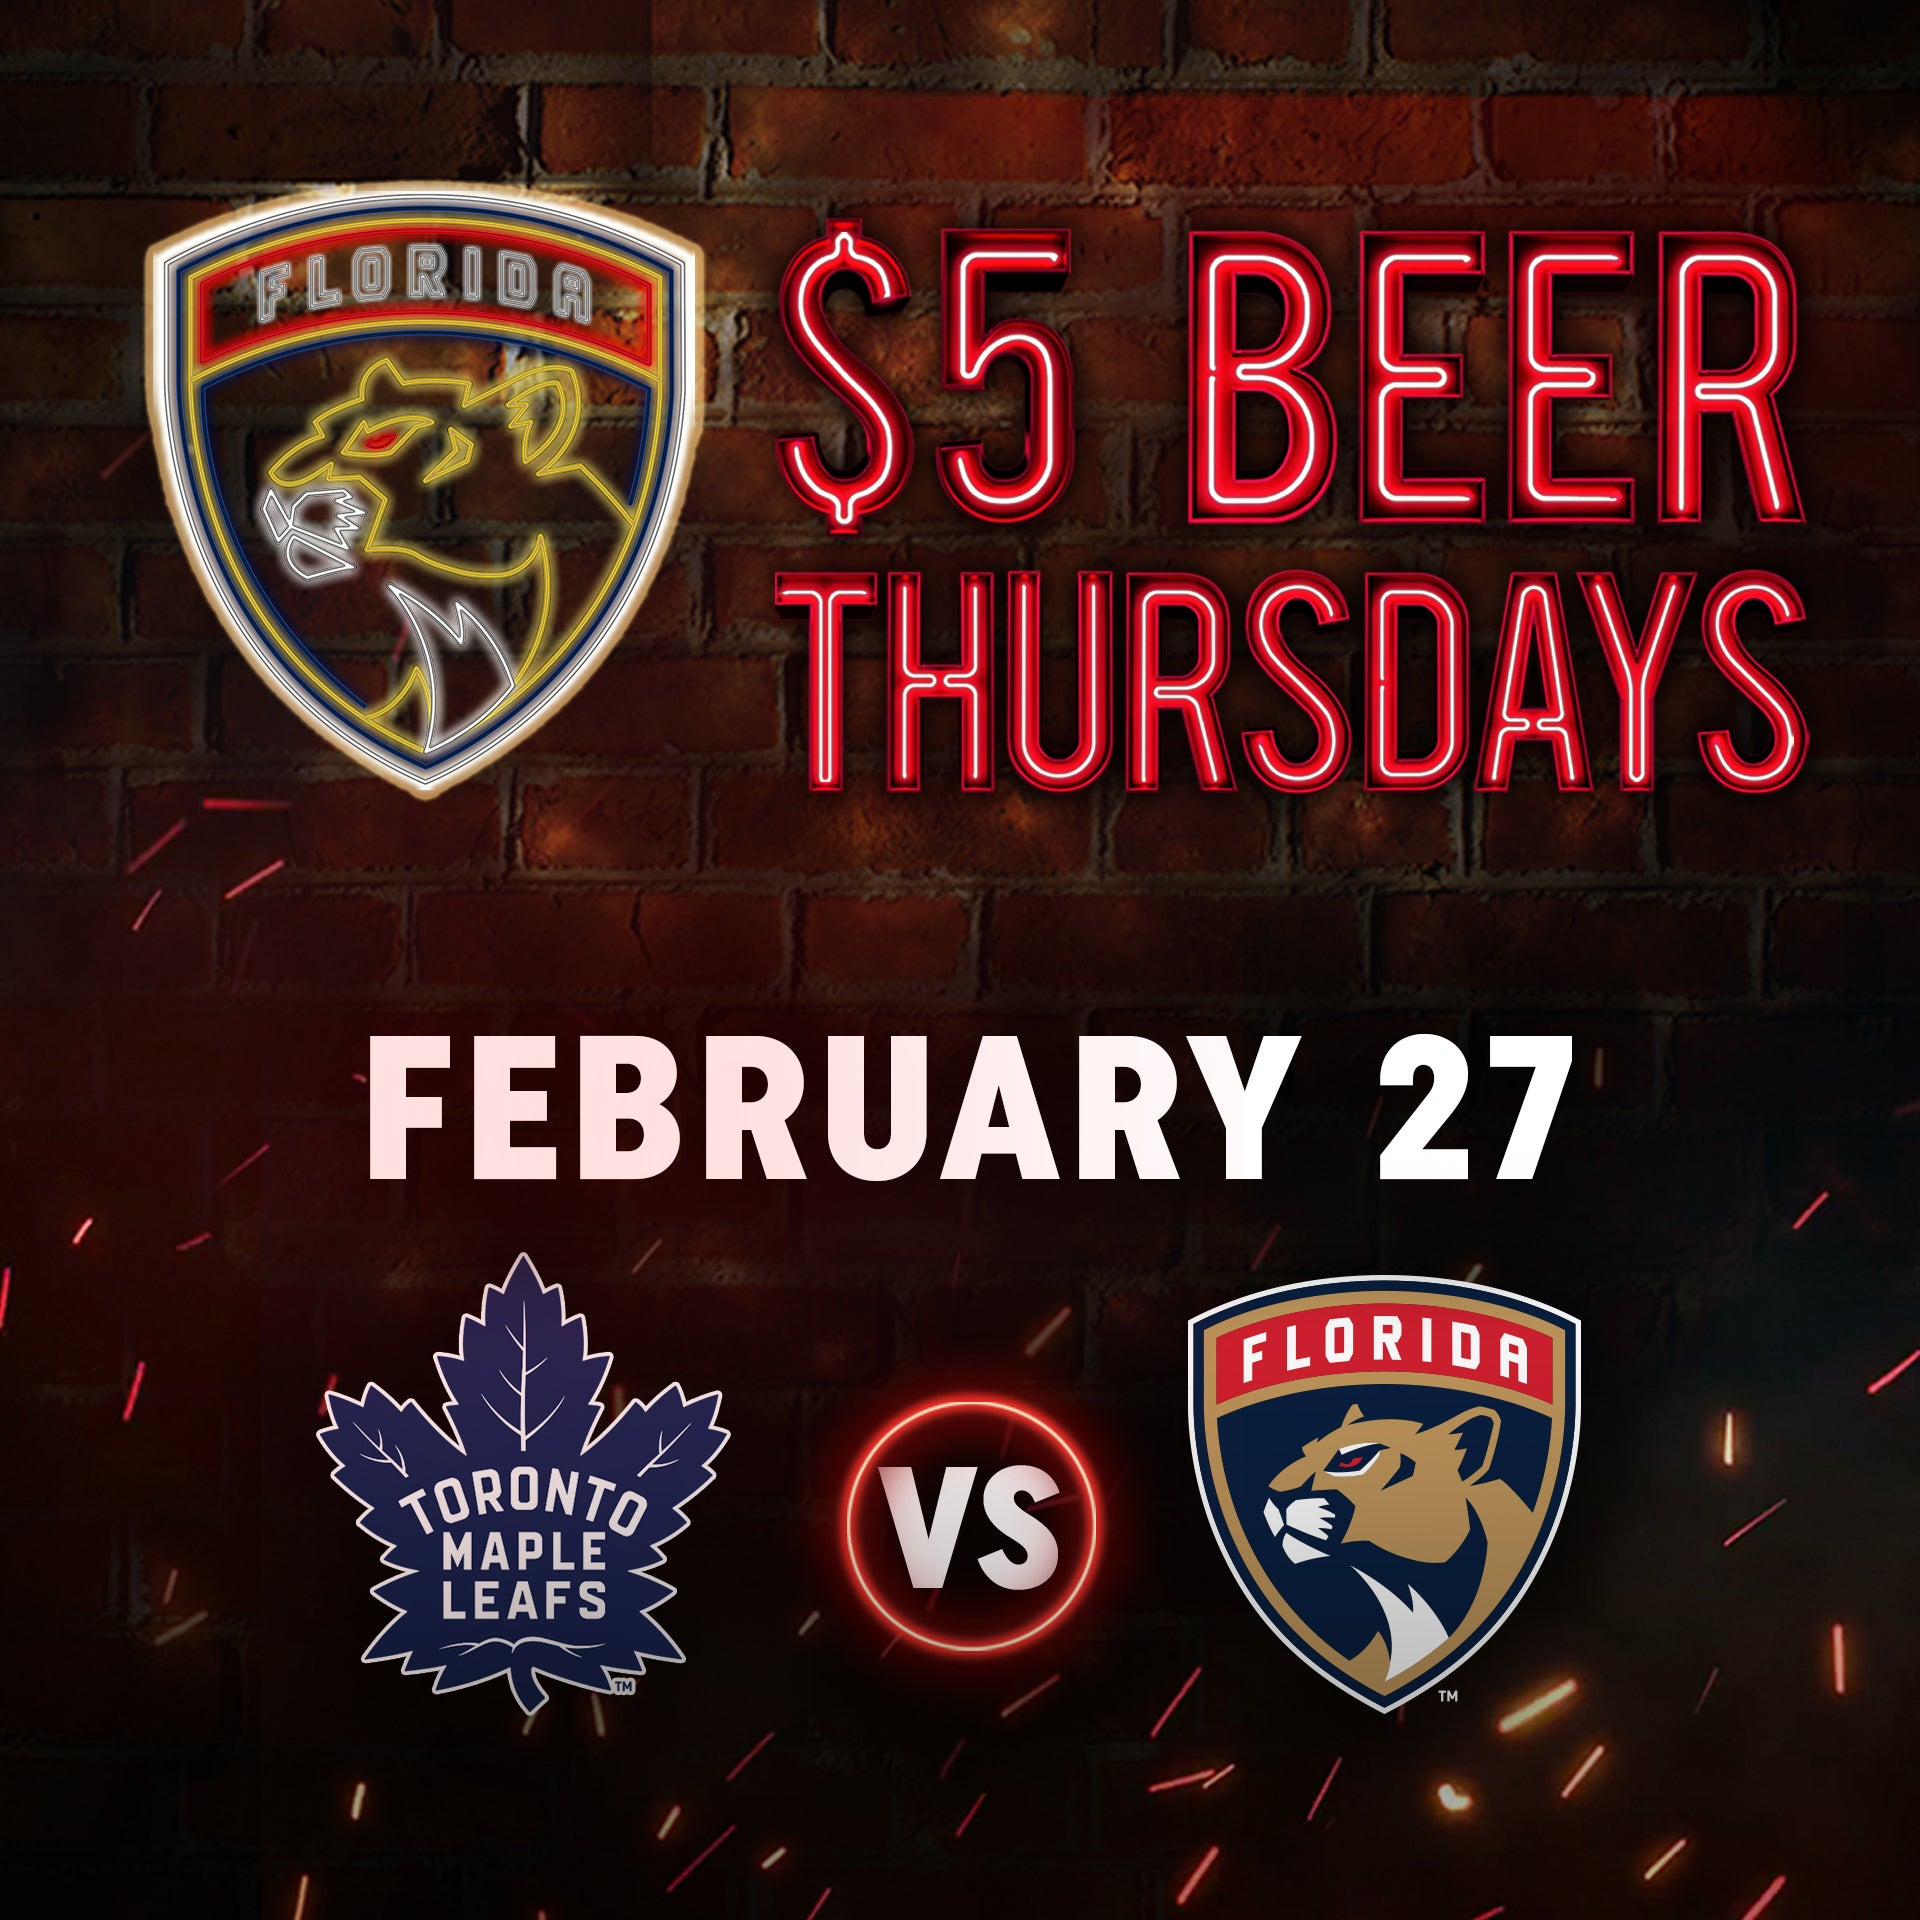 $5 Beer Thursday